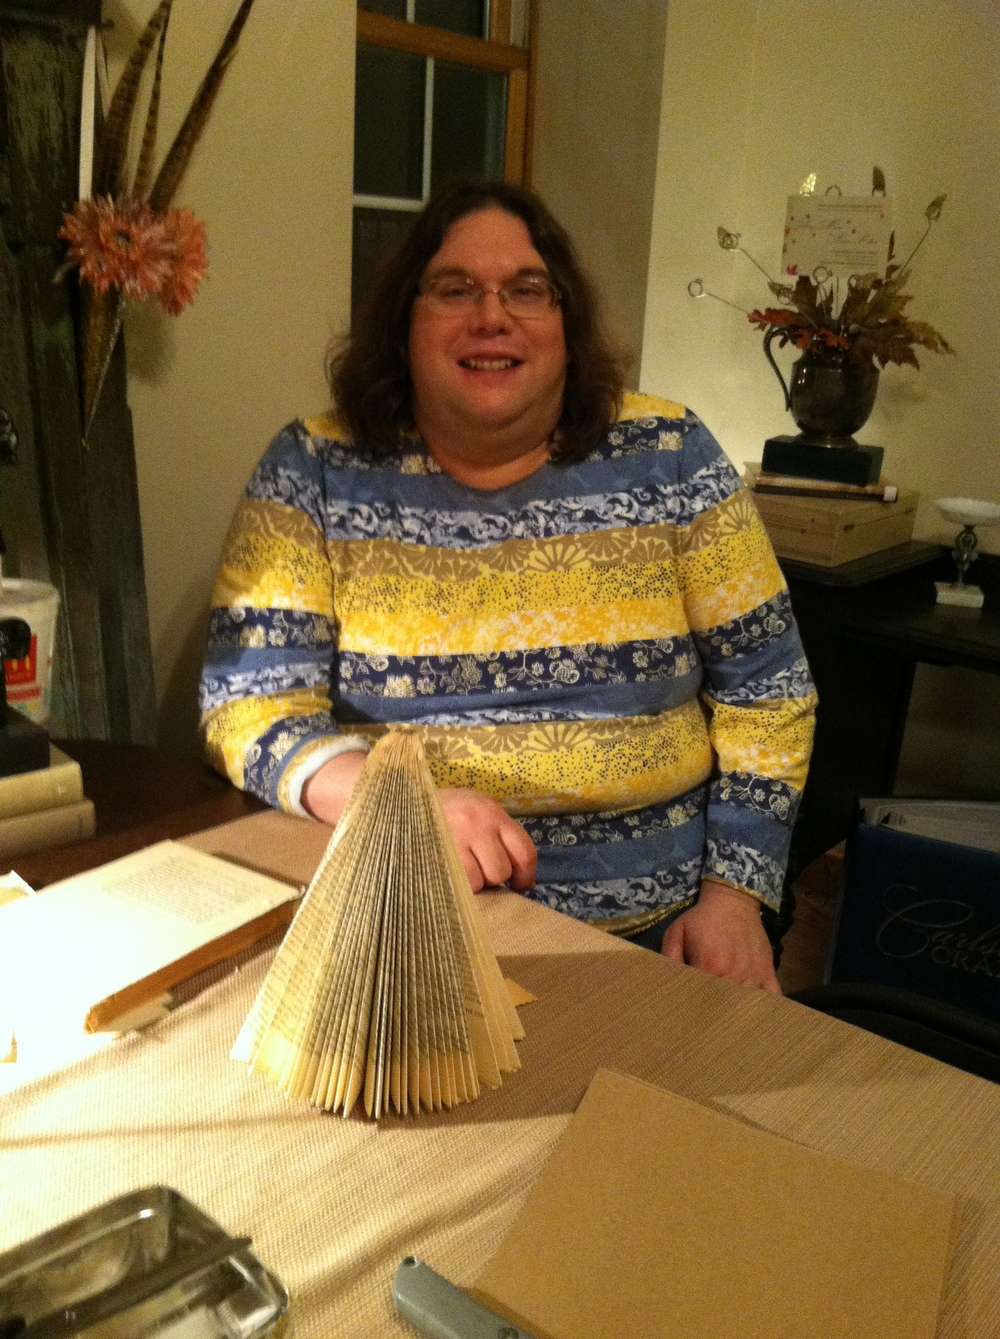 One of my bestest friends, Kathy. Kathy has become more crafty as the years pass. Proud of her paper tree.